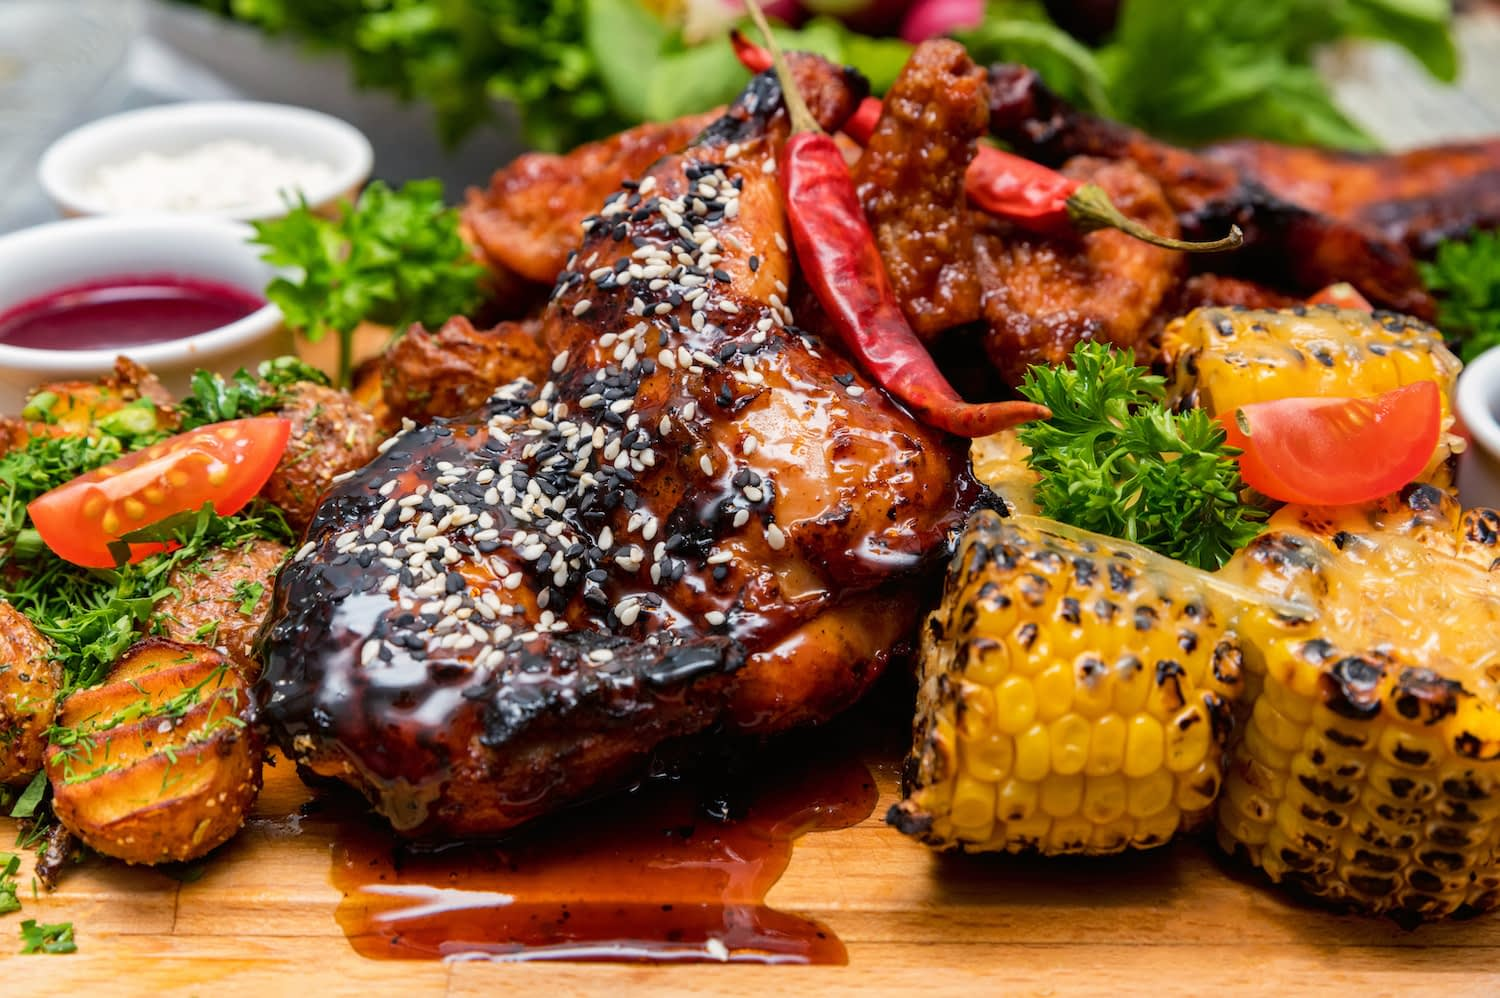 Barbecue chicken on a wooden table, surrounded by corn and potatoes.